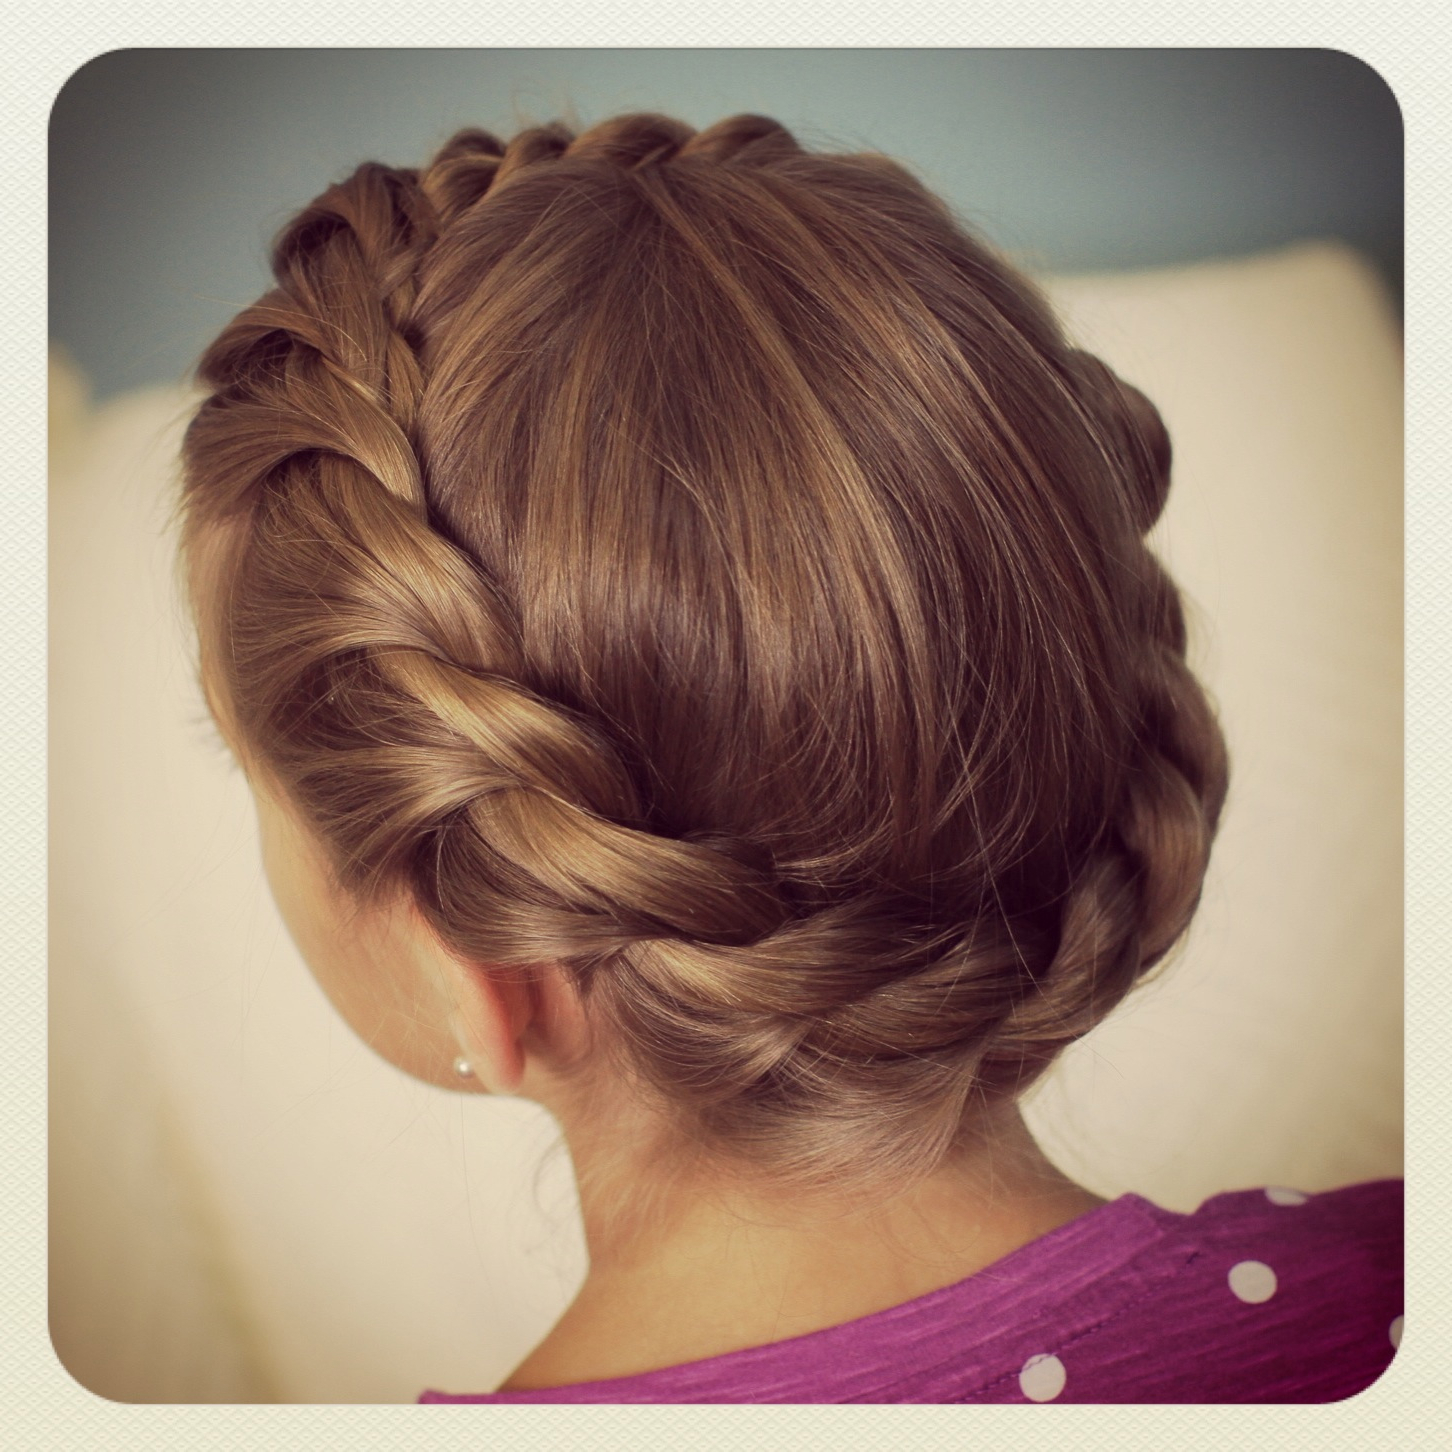 Updo Hairstyles (View 9 of 20)